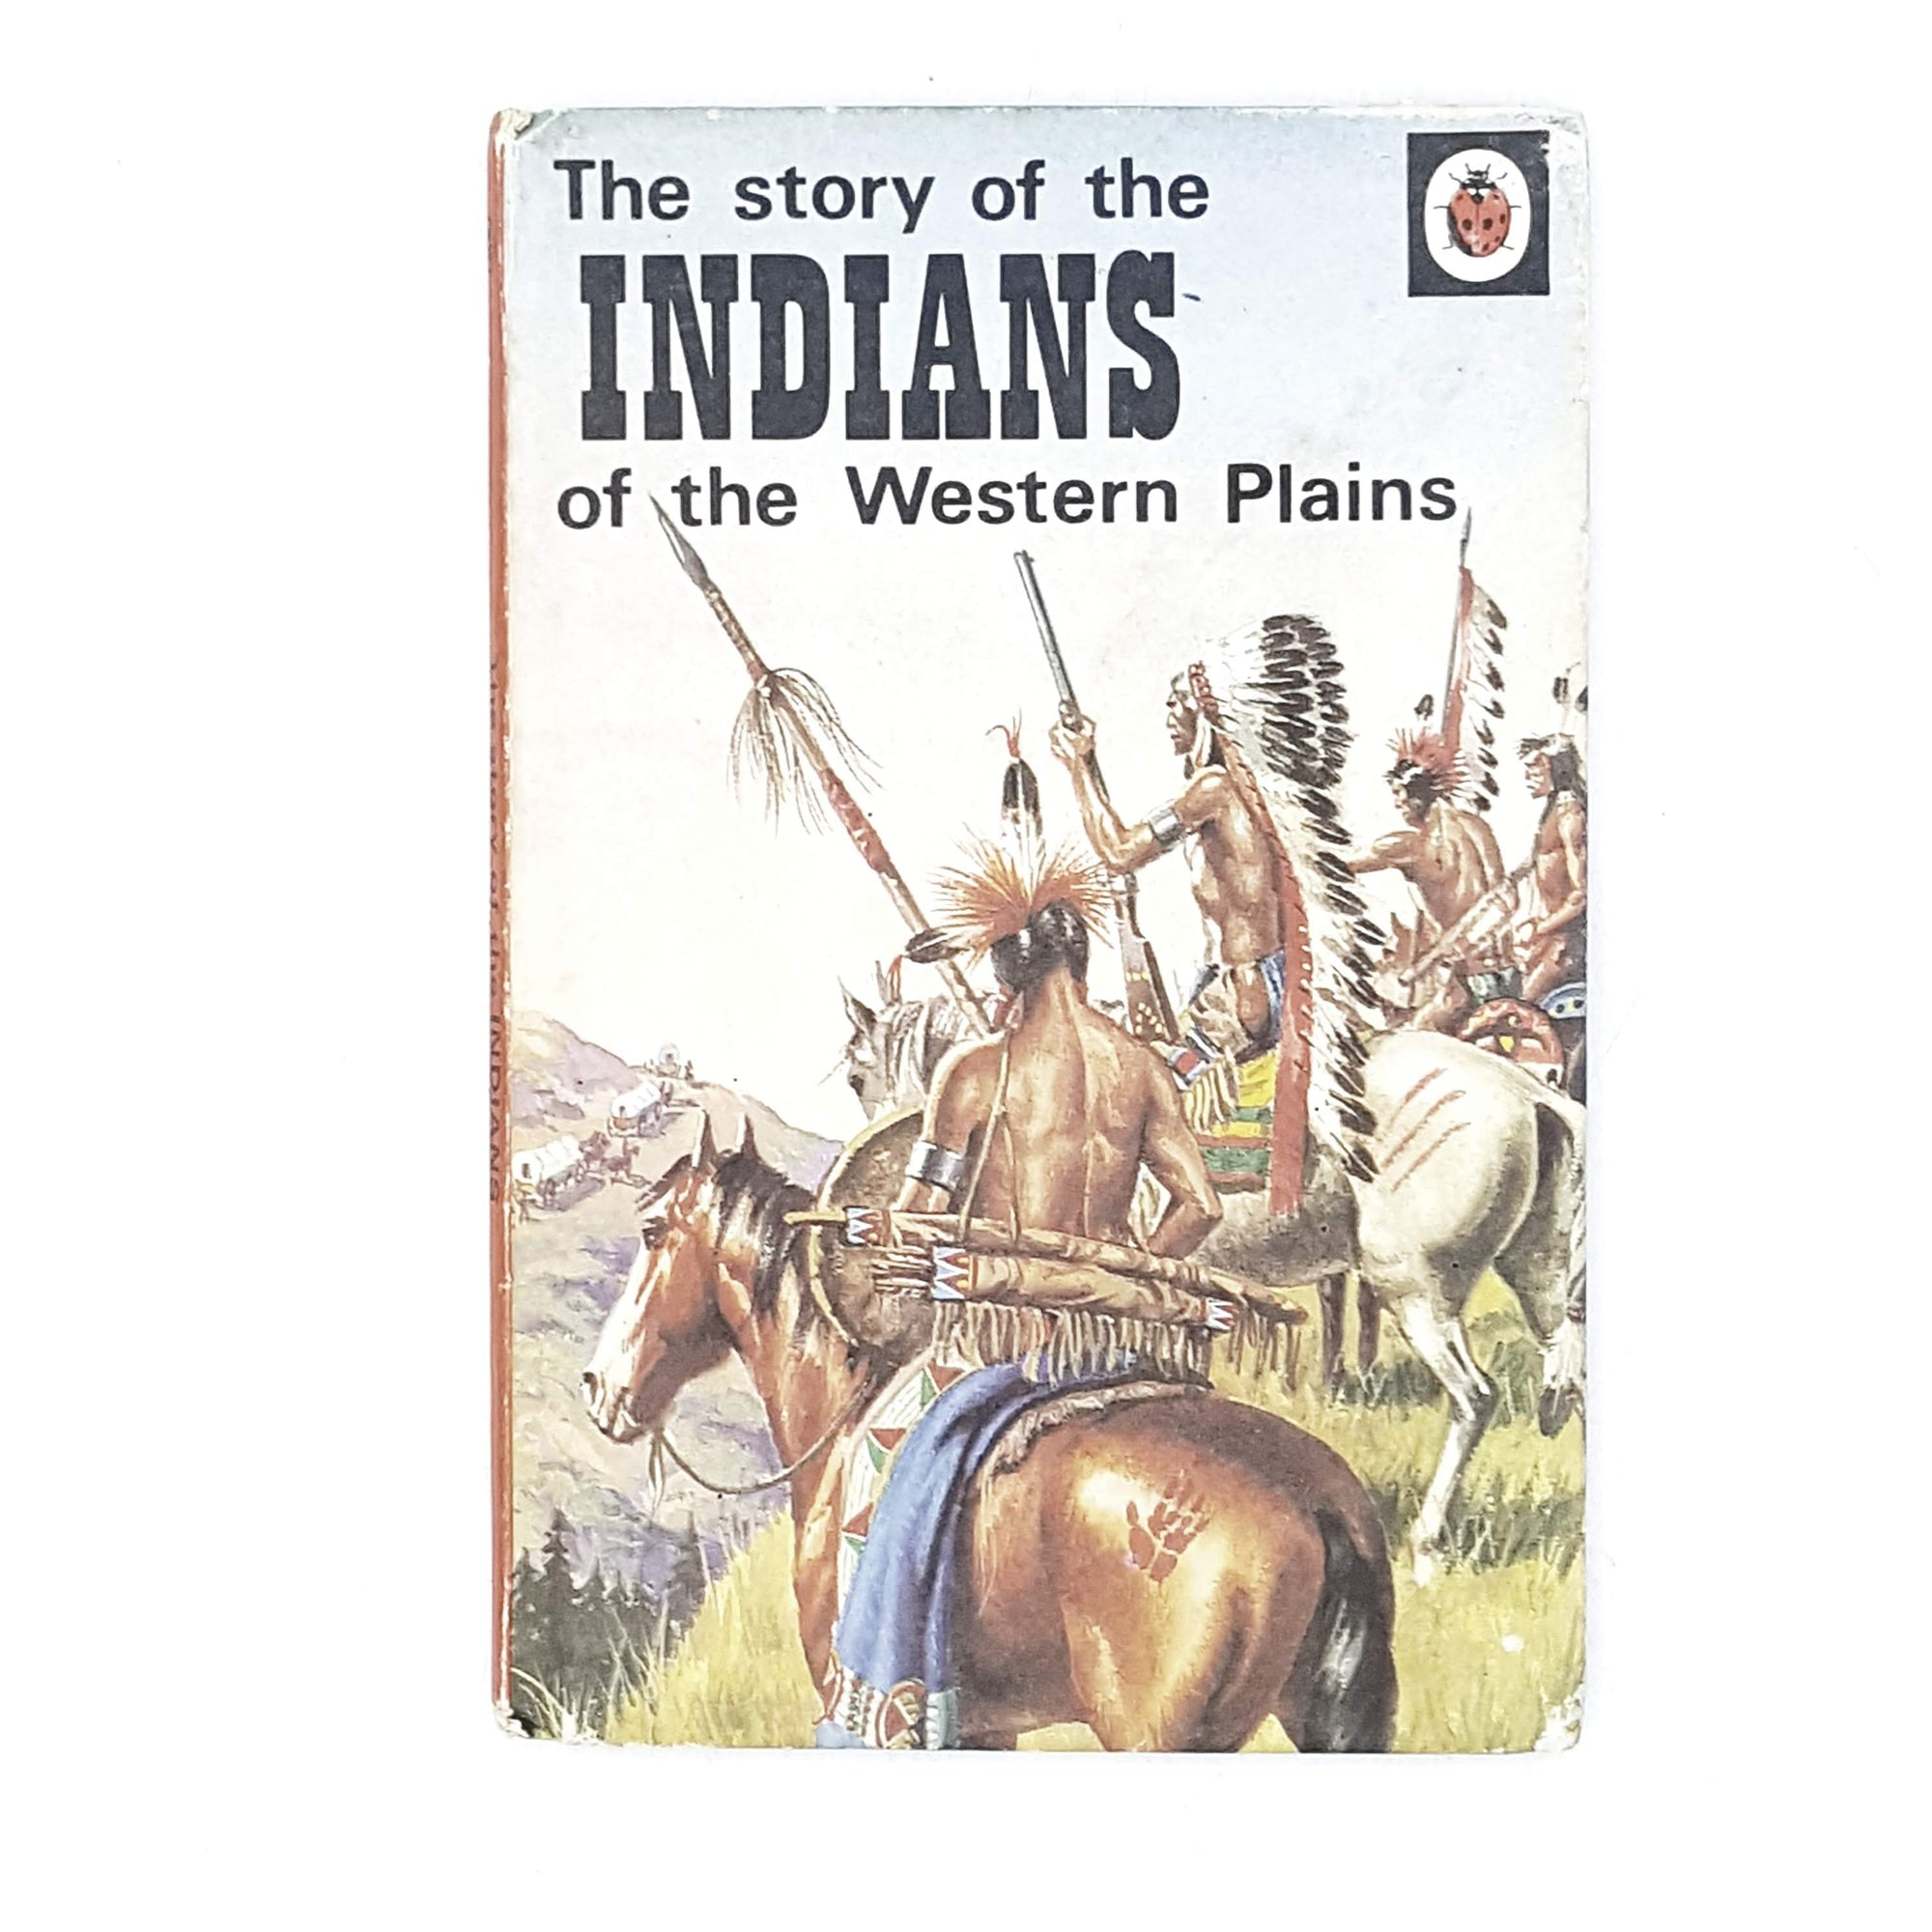 vintage-ladybird-story-indians-western-plains-kindergarten-books-country-house-library